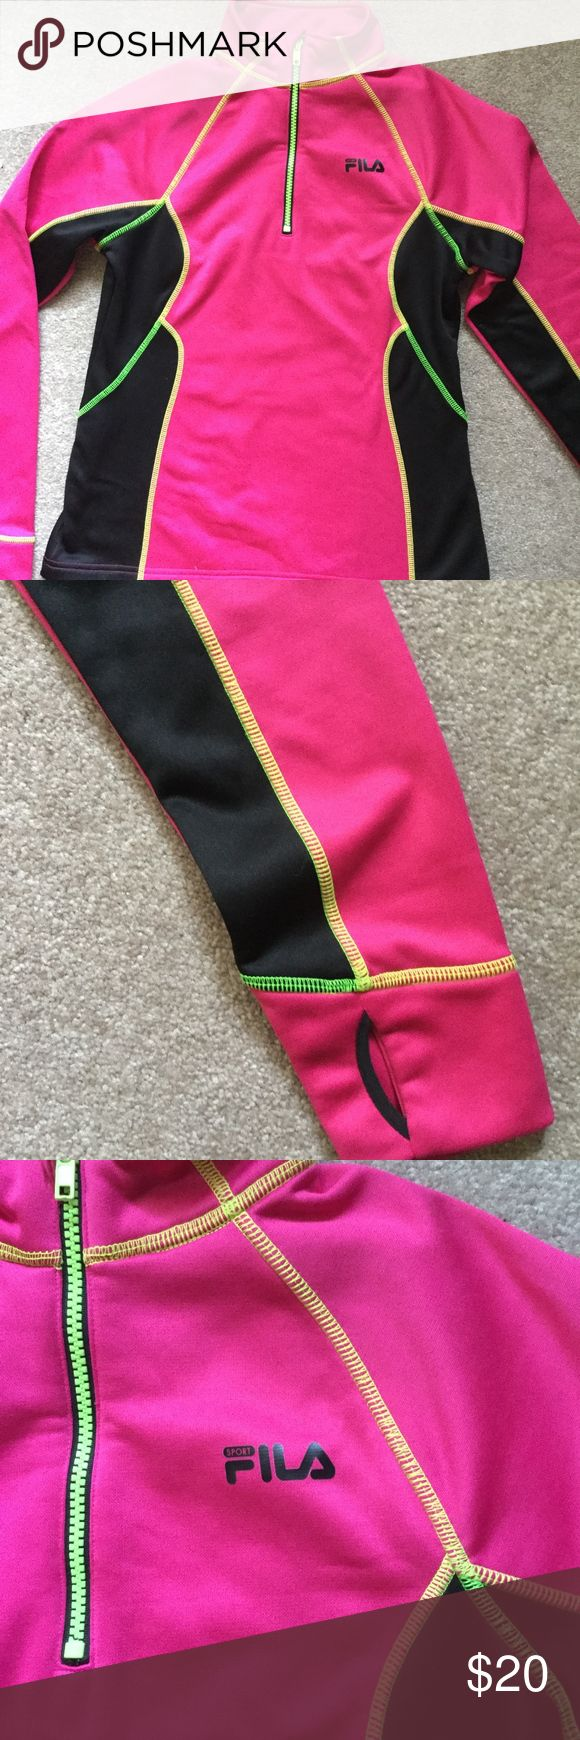 FILA Small Neon Running Jacket! Fill Small Bright pink, neon yellow, and black accents! Thumb holes and fleece lined. 100% polyester :) Slim fit look great condition worn a few times! :) Colors are awesome!! Fila Tops Sweatshirts & Hoodies